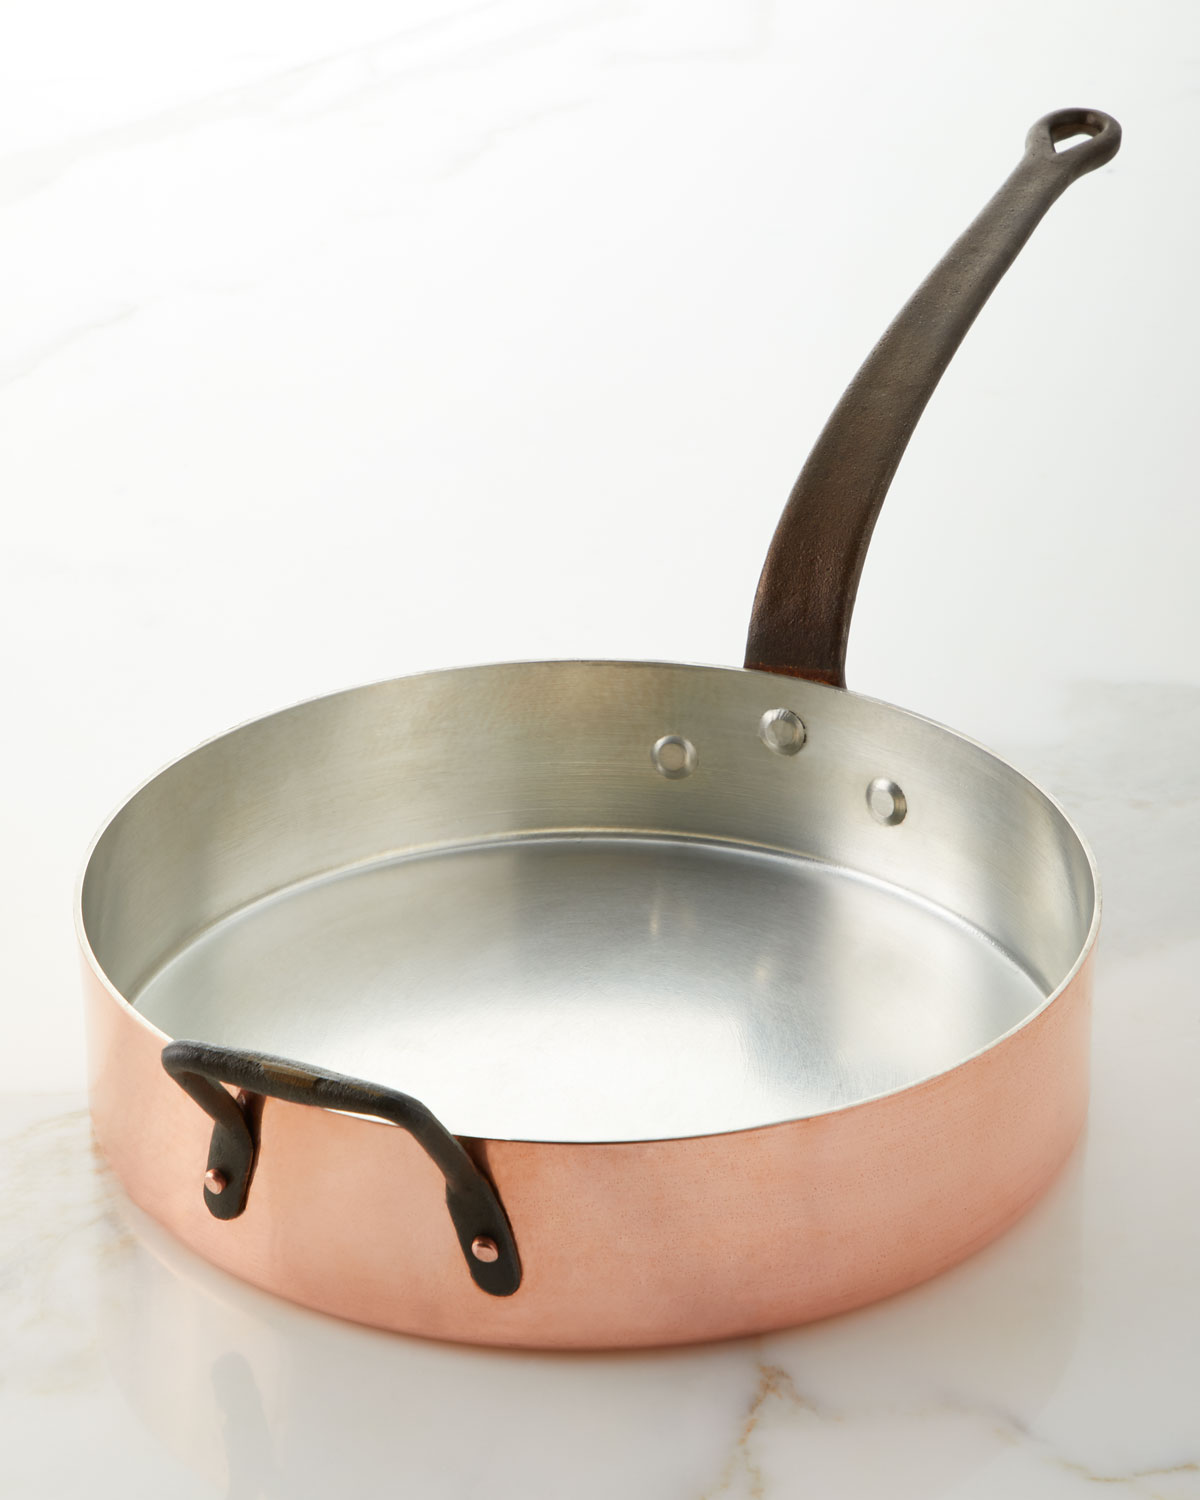 Duparquet Copper Cookware Cookware & bakewares SOLID COPPER SILVER-LINED SAUTE PAN